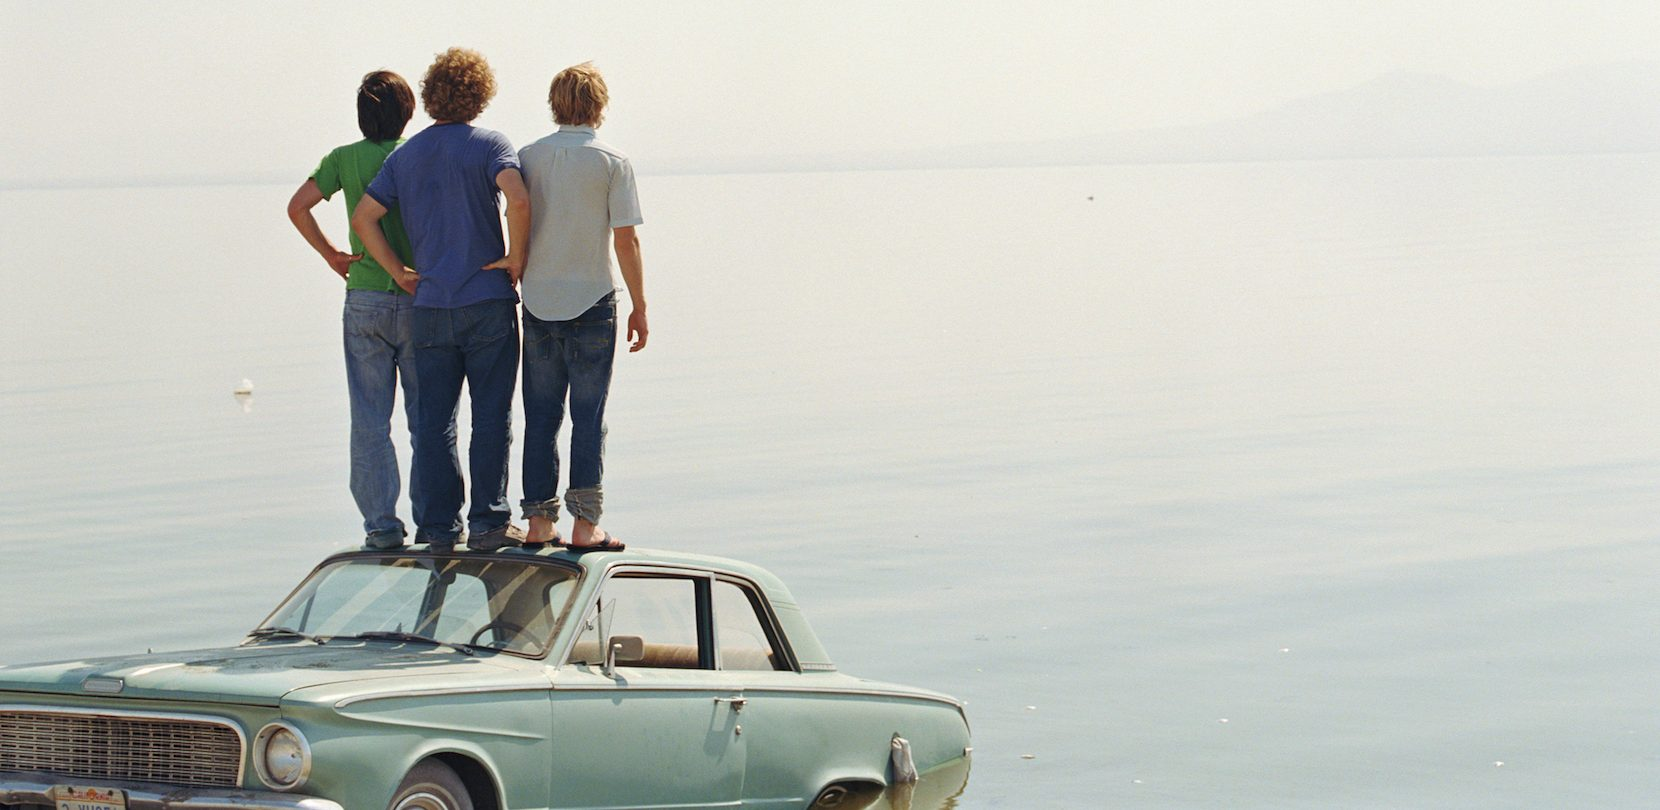 three men standing on car bought with car loan